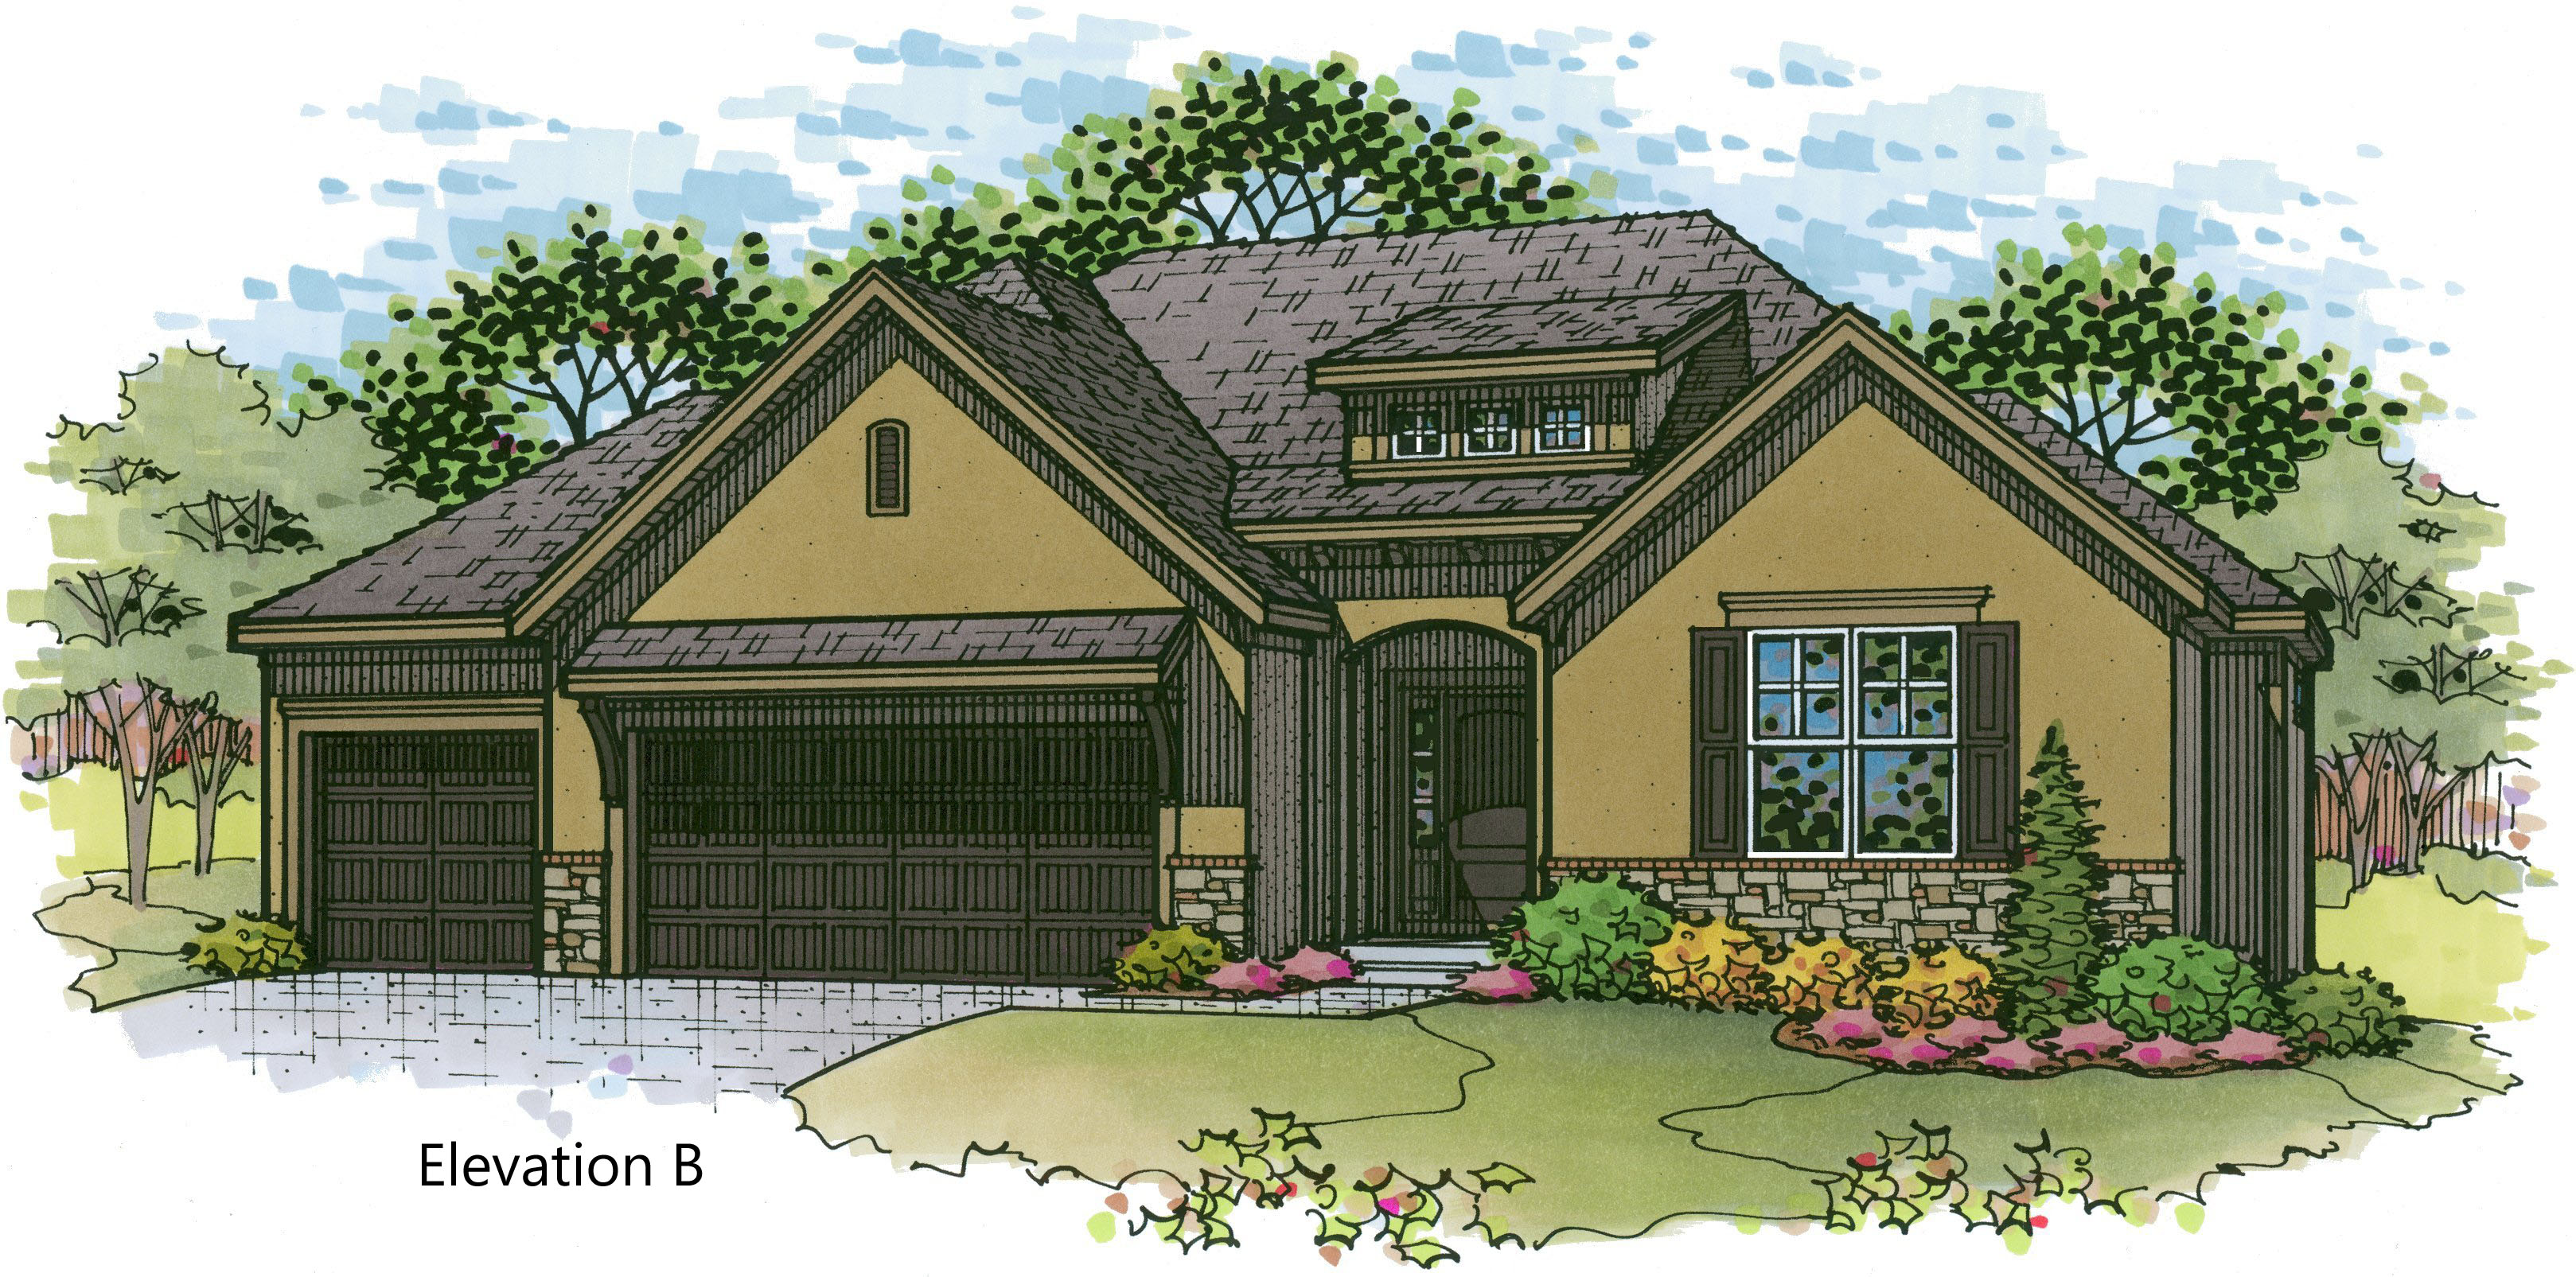 Aspen elev. B color rendering